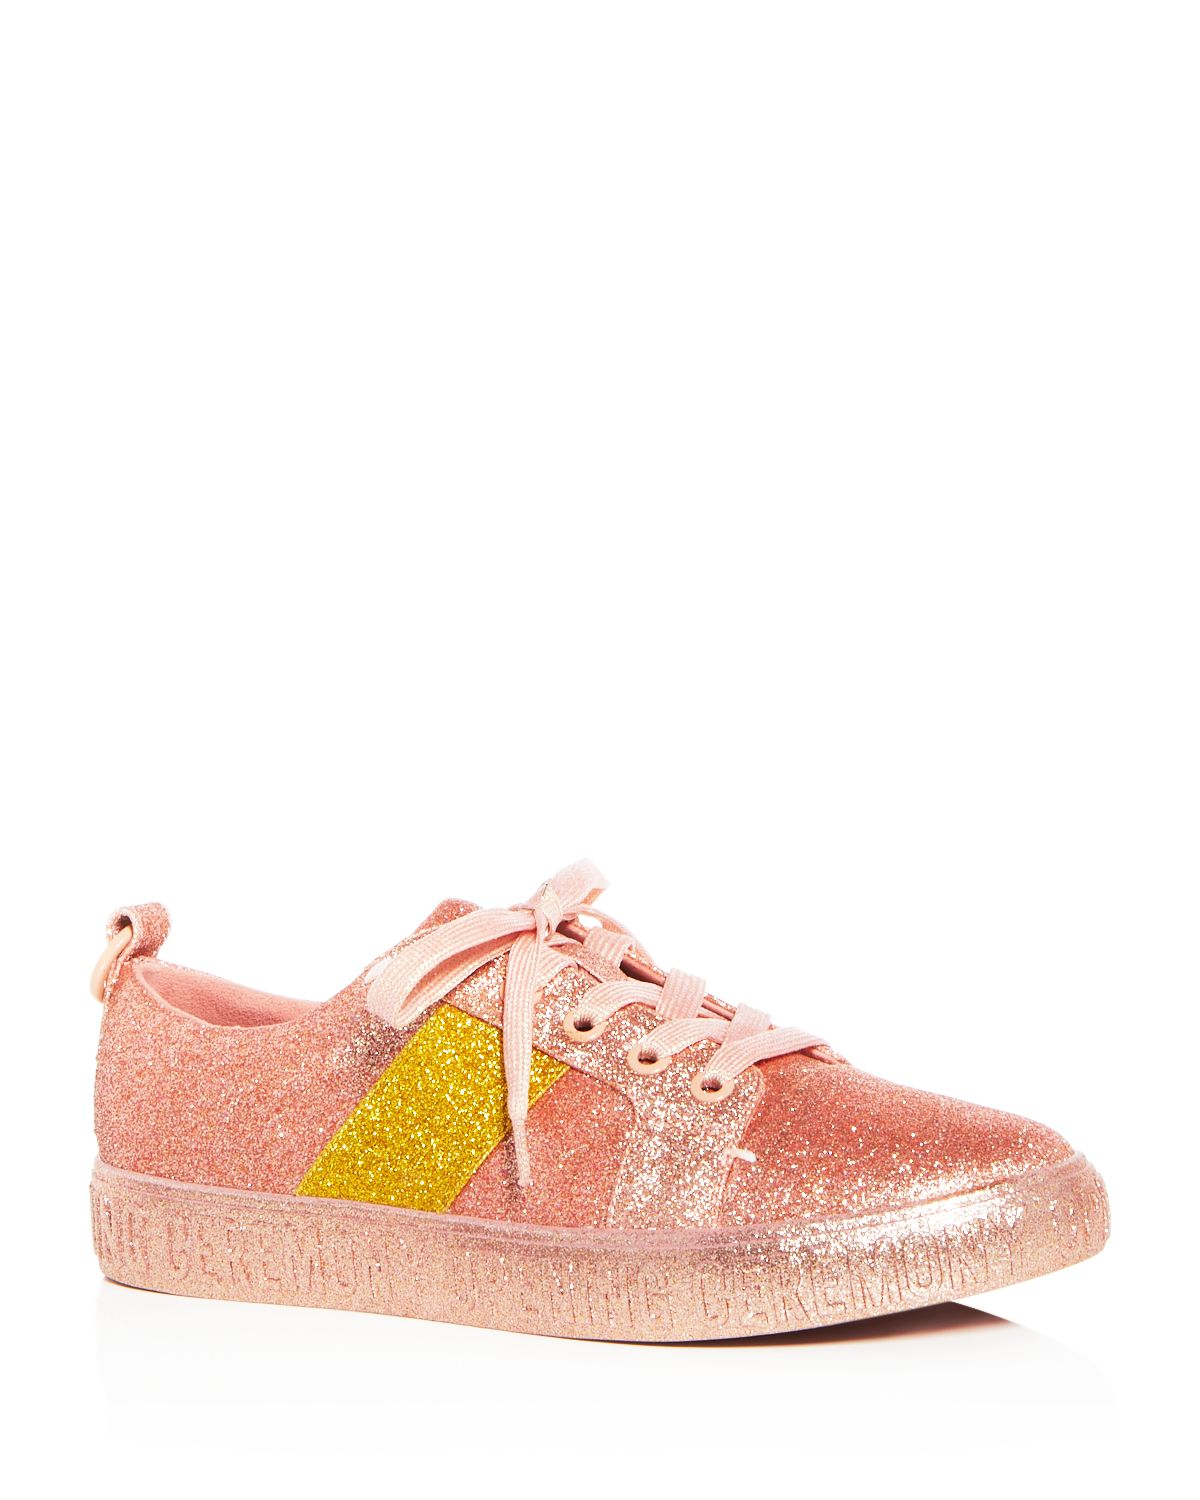 Opening Ceremony Women's La Cienega Glitter Lace Up Platform Sneakers